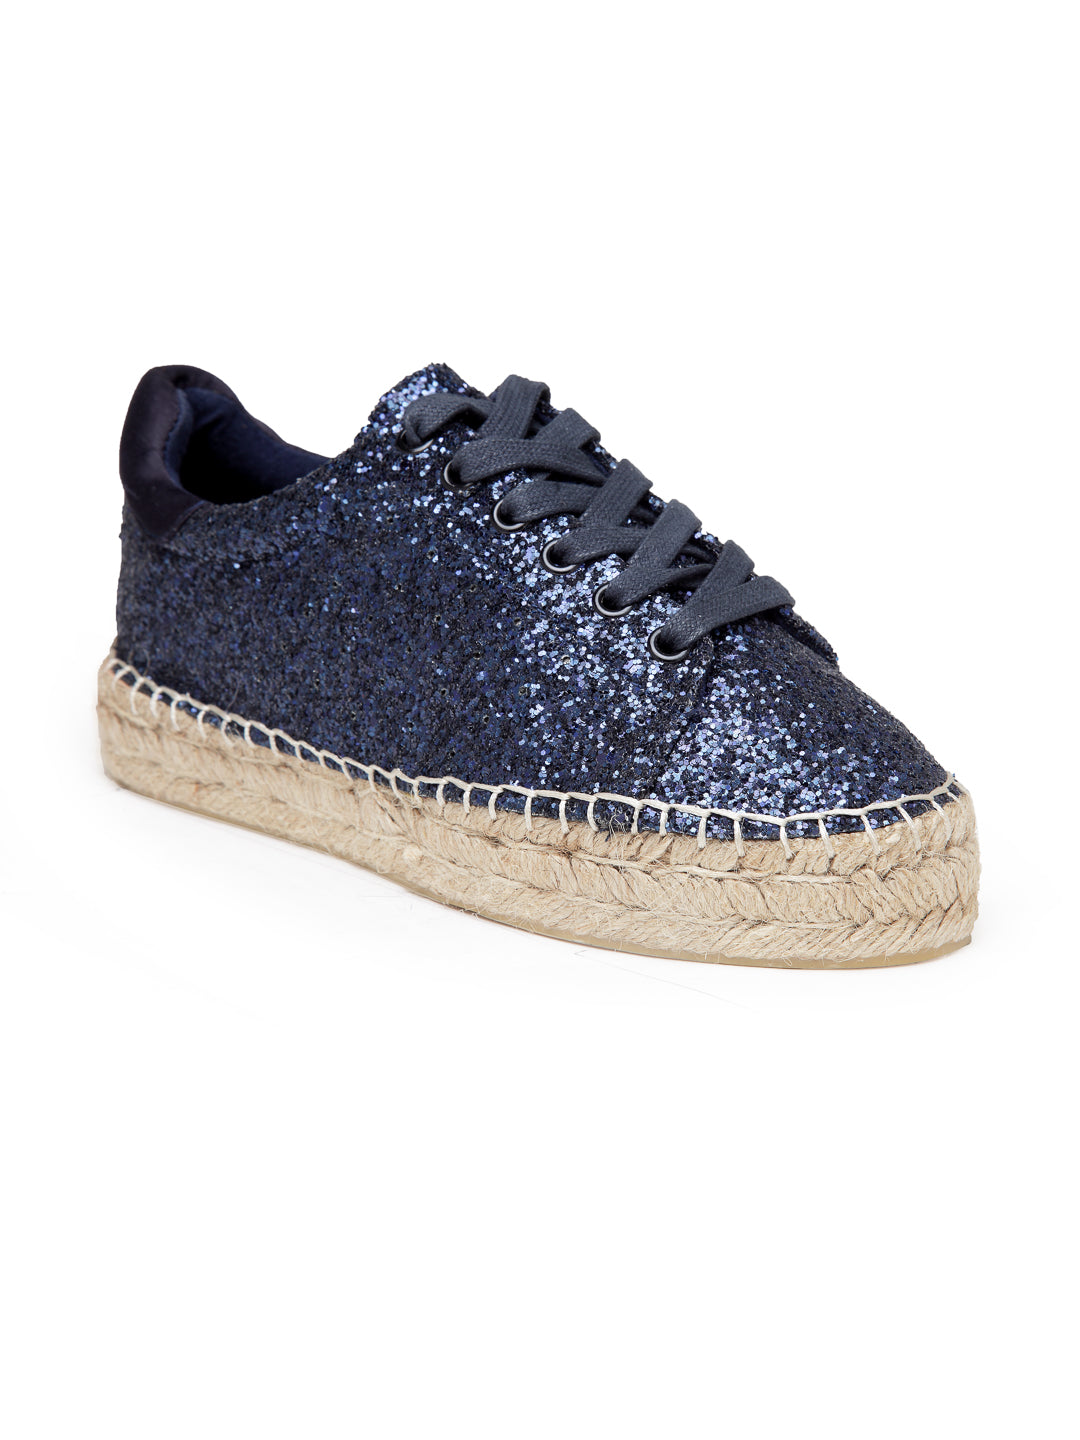 Womens Navy Lace-Up Espadrille Sneaker - London Rag India